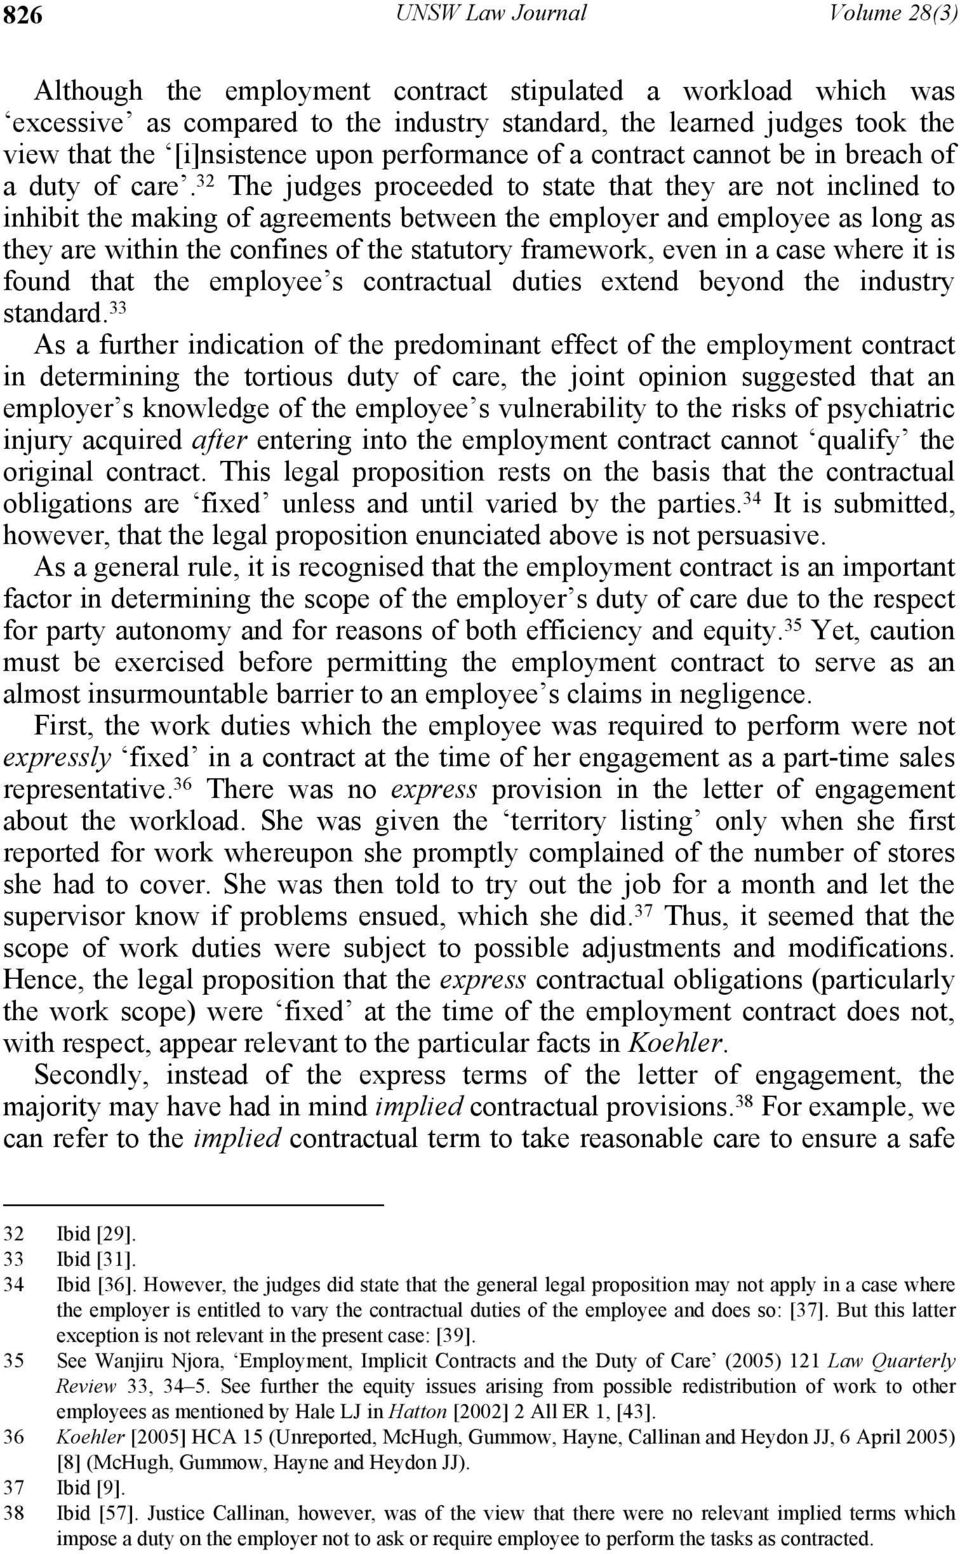 32 The judges proceeded to state that they are not inclined to inhibit the making of agreements between the employer and employee as long as they are within the confines of the statutory framework,